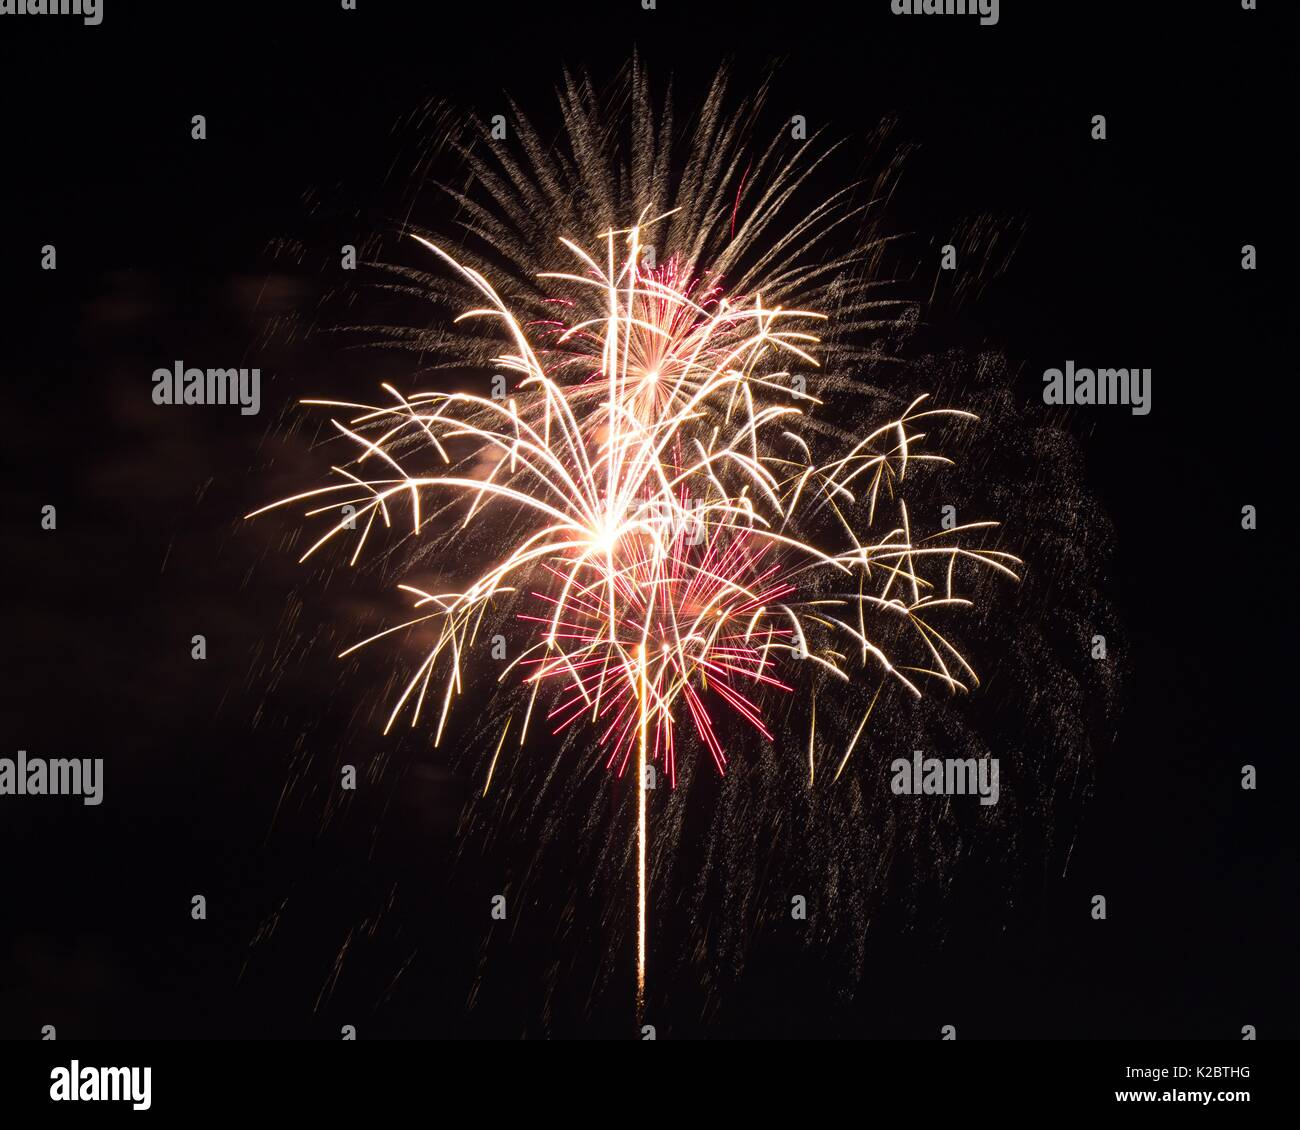 Fireworks burst in the air on 4th of July. Stock Photo